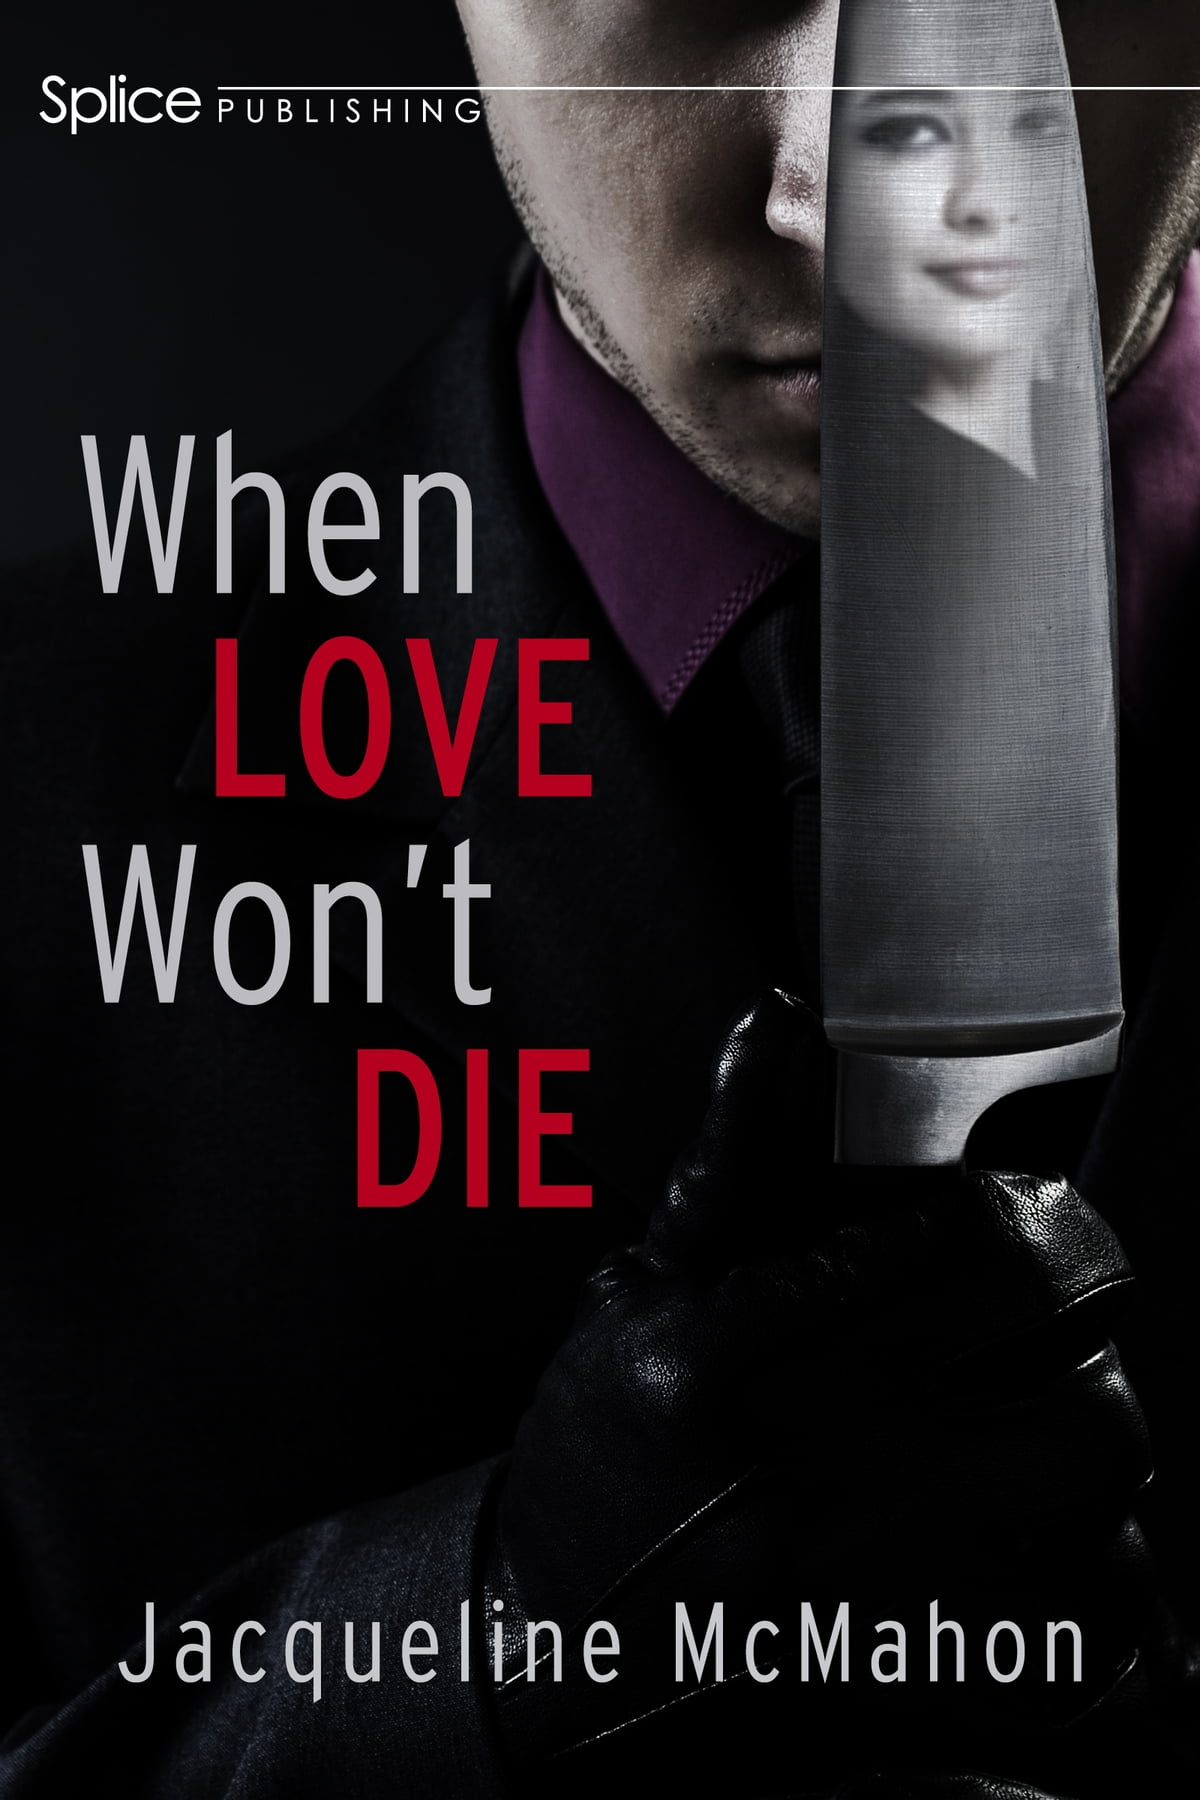 When love wont die ebook by jacqueline mcmahon 9781987854008 when love wont die ebook by jacqueline mcmahon 9781987854008 rakuten kobo fandeluxe Document